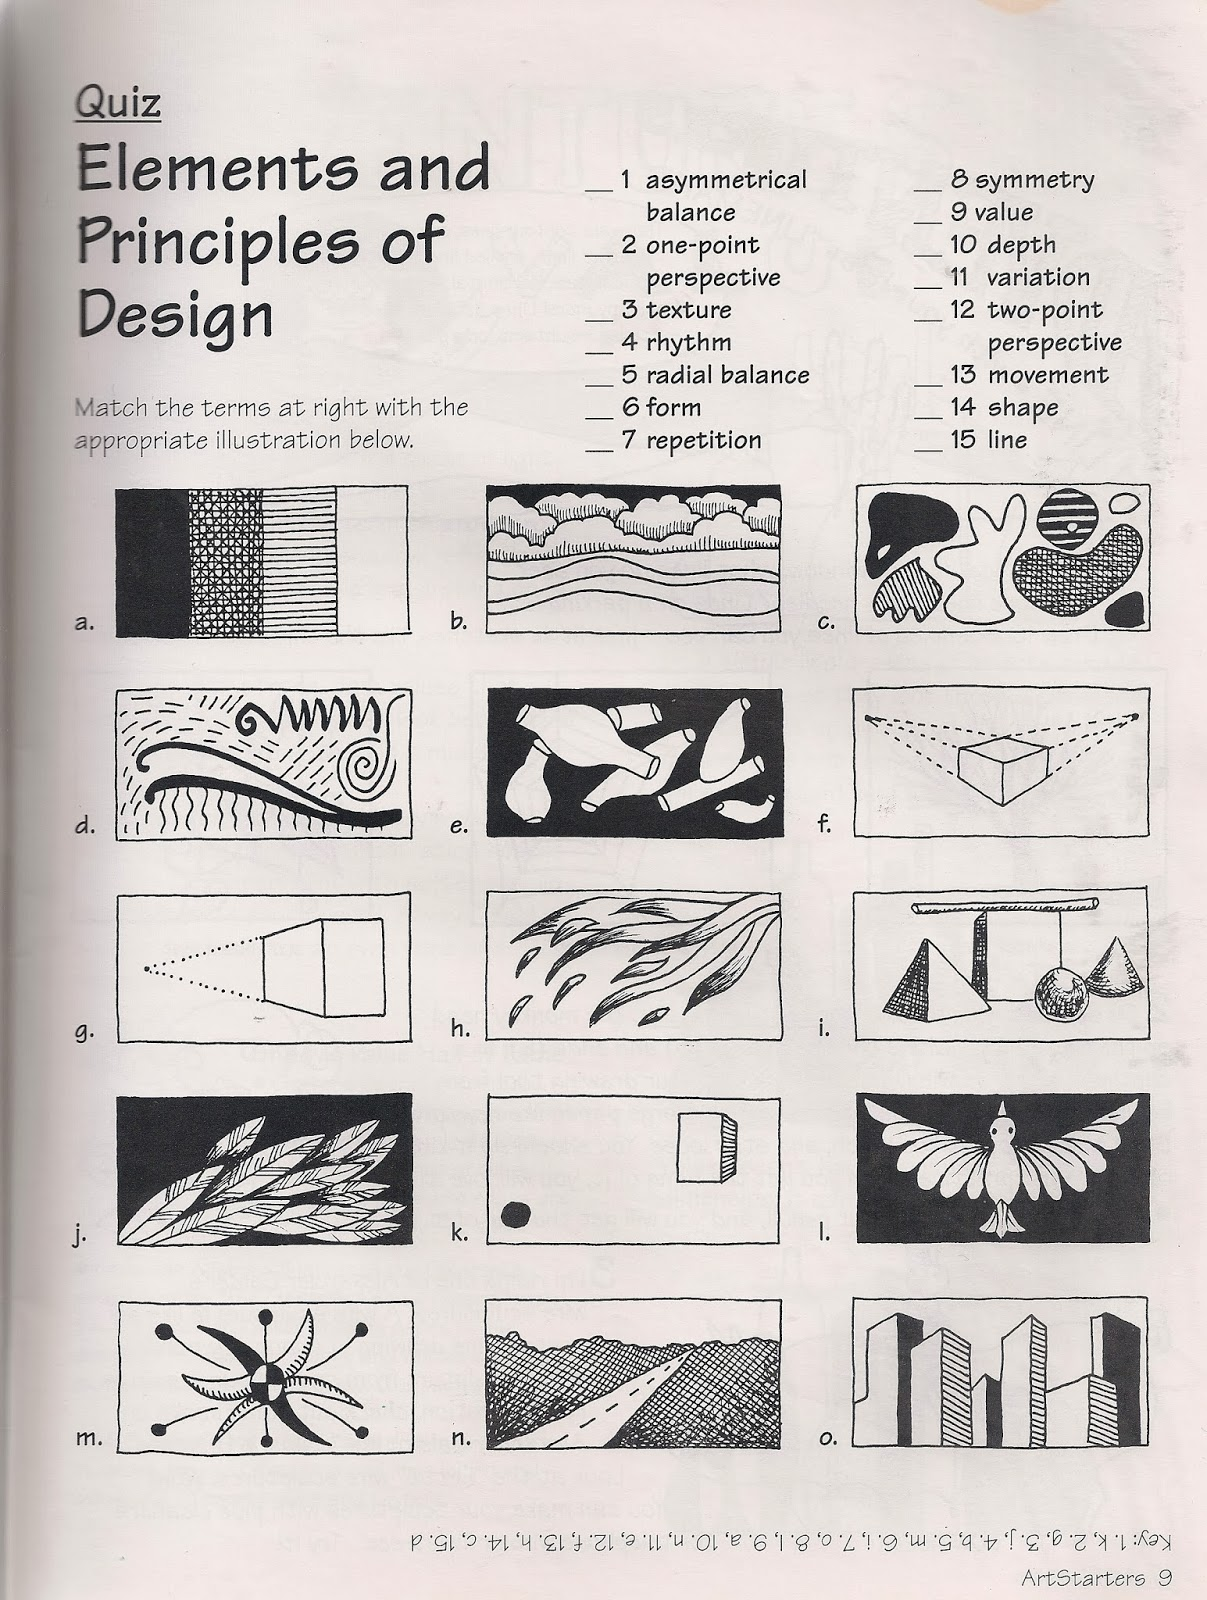 worksheet Elements And Principles Of Art Worksheet no corner suns the elements and principles of art free quiz i copied this from ande cooks starters a mini colorful one page handout quizzing your class on what they know about element